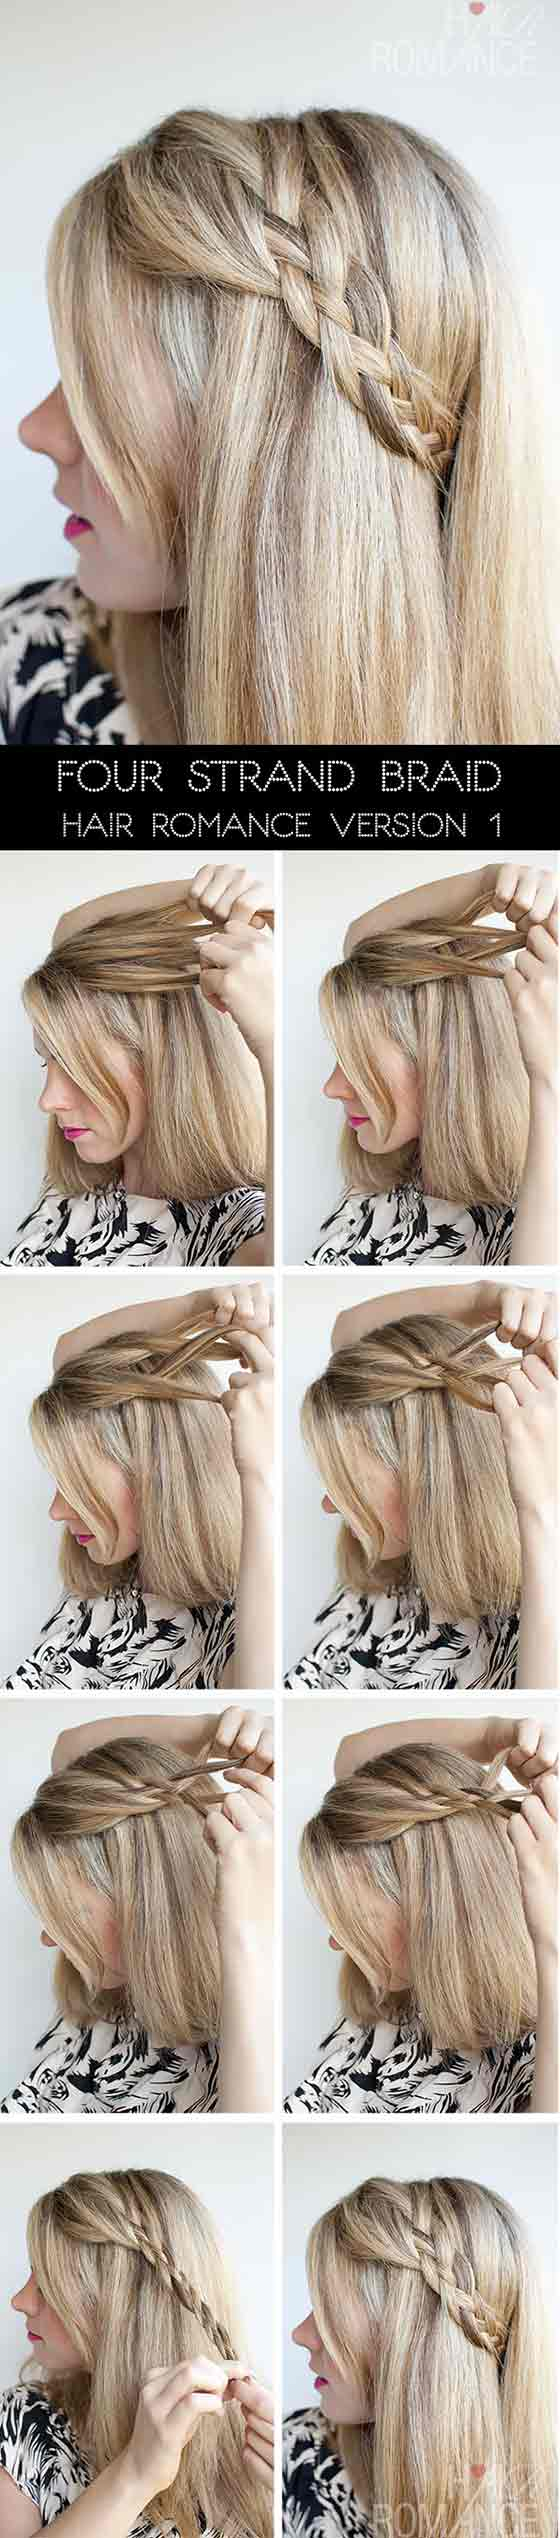 5. Four Strand Accent Braid